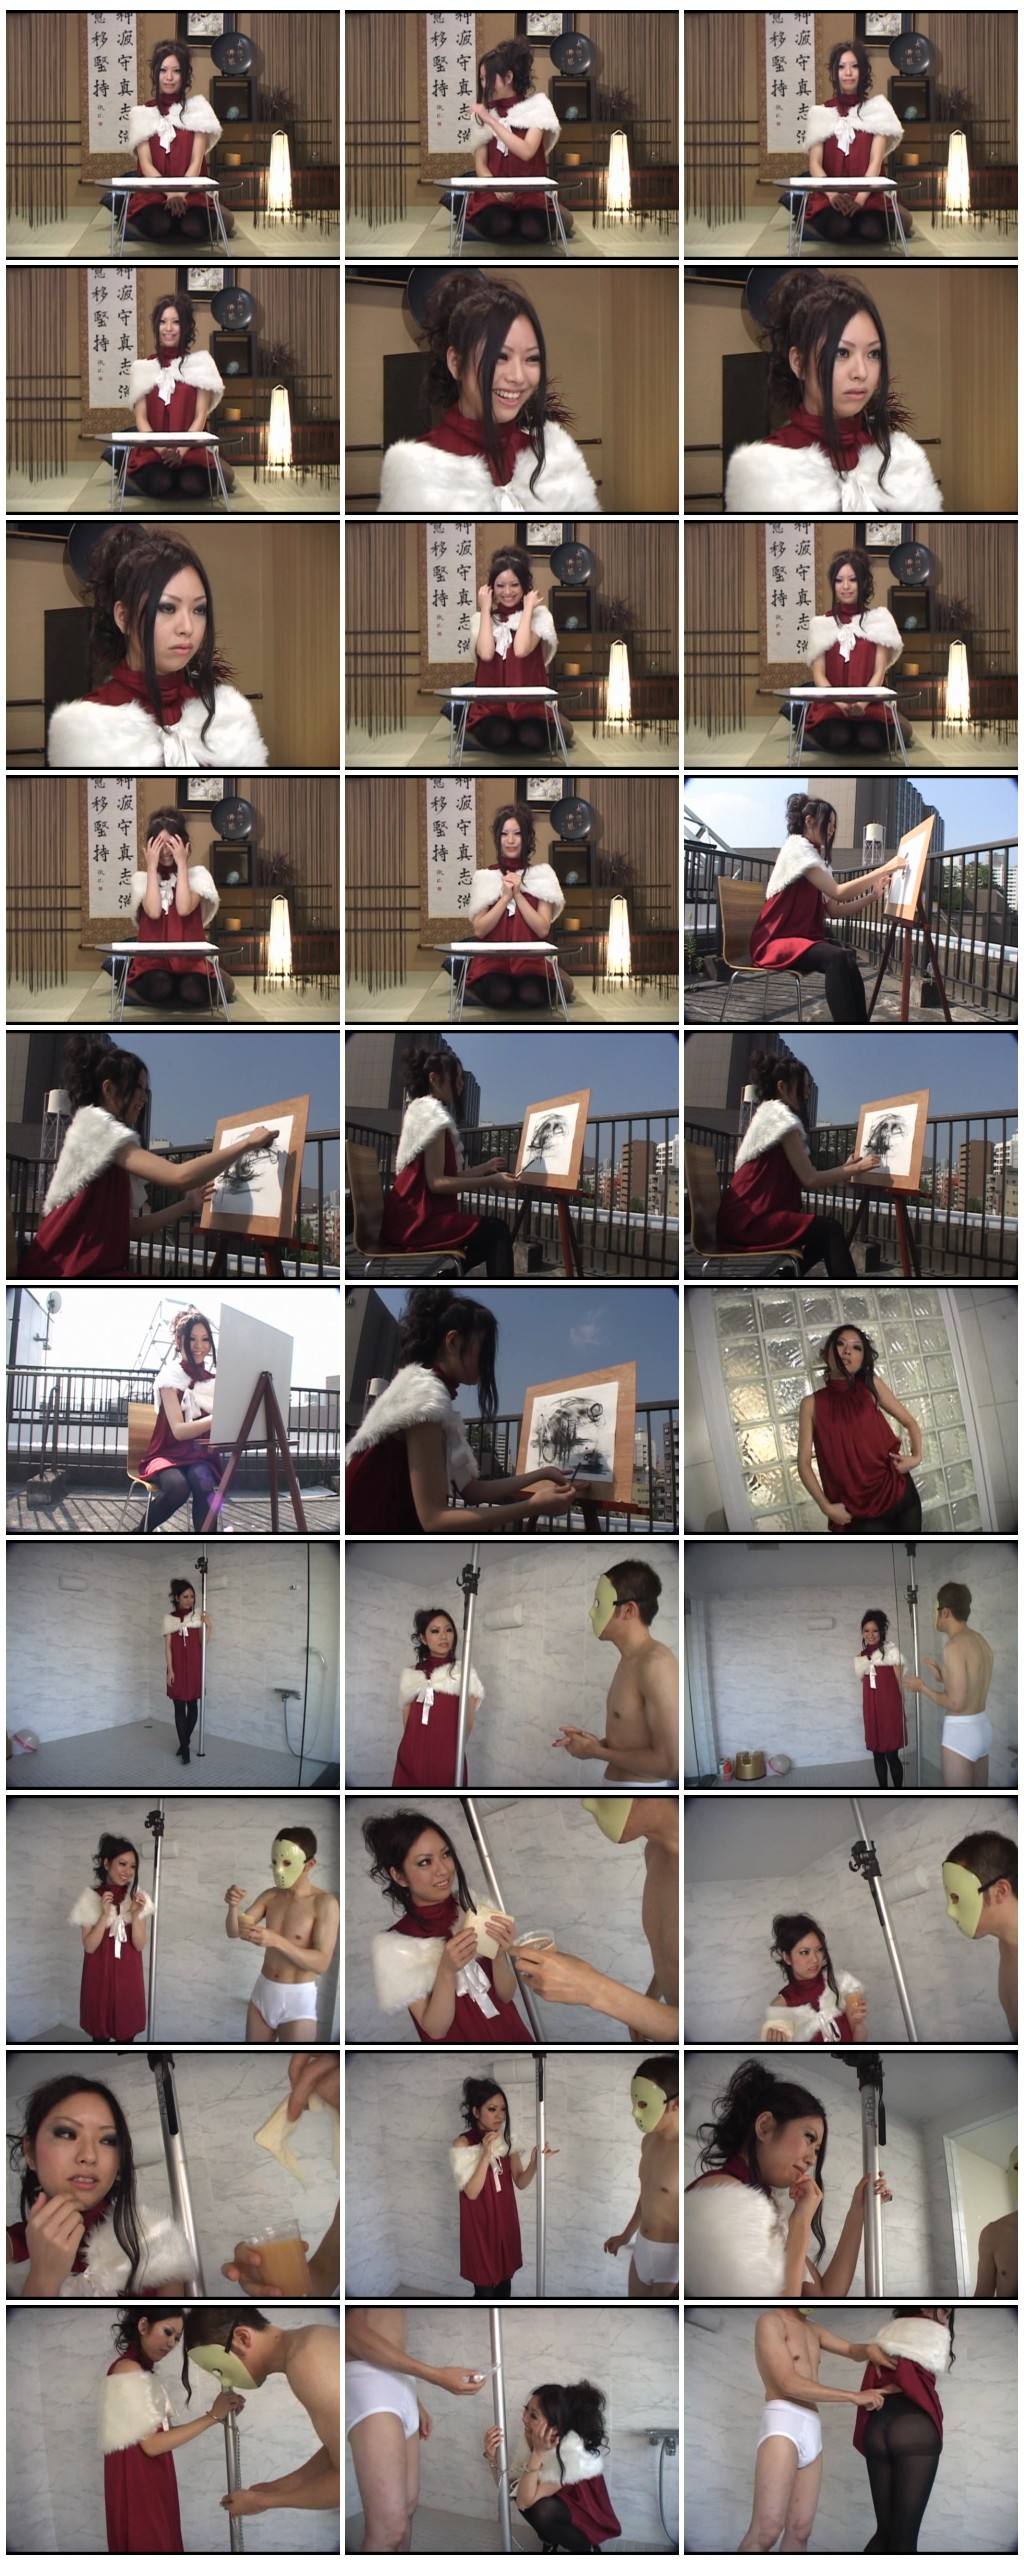 COWD-016 A Precious Shit People 16 [Scat sex, shit sex,Oral-Anal Sex, Smearing,Sex Toys, Masturbation, pissing, shit, defecation, Toilet Slavery, Rape, Humiliation, Group Sex]